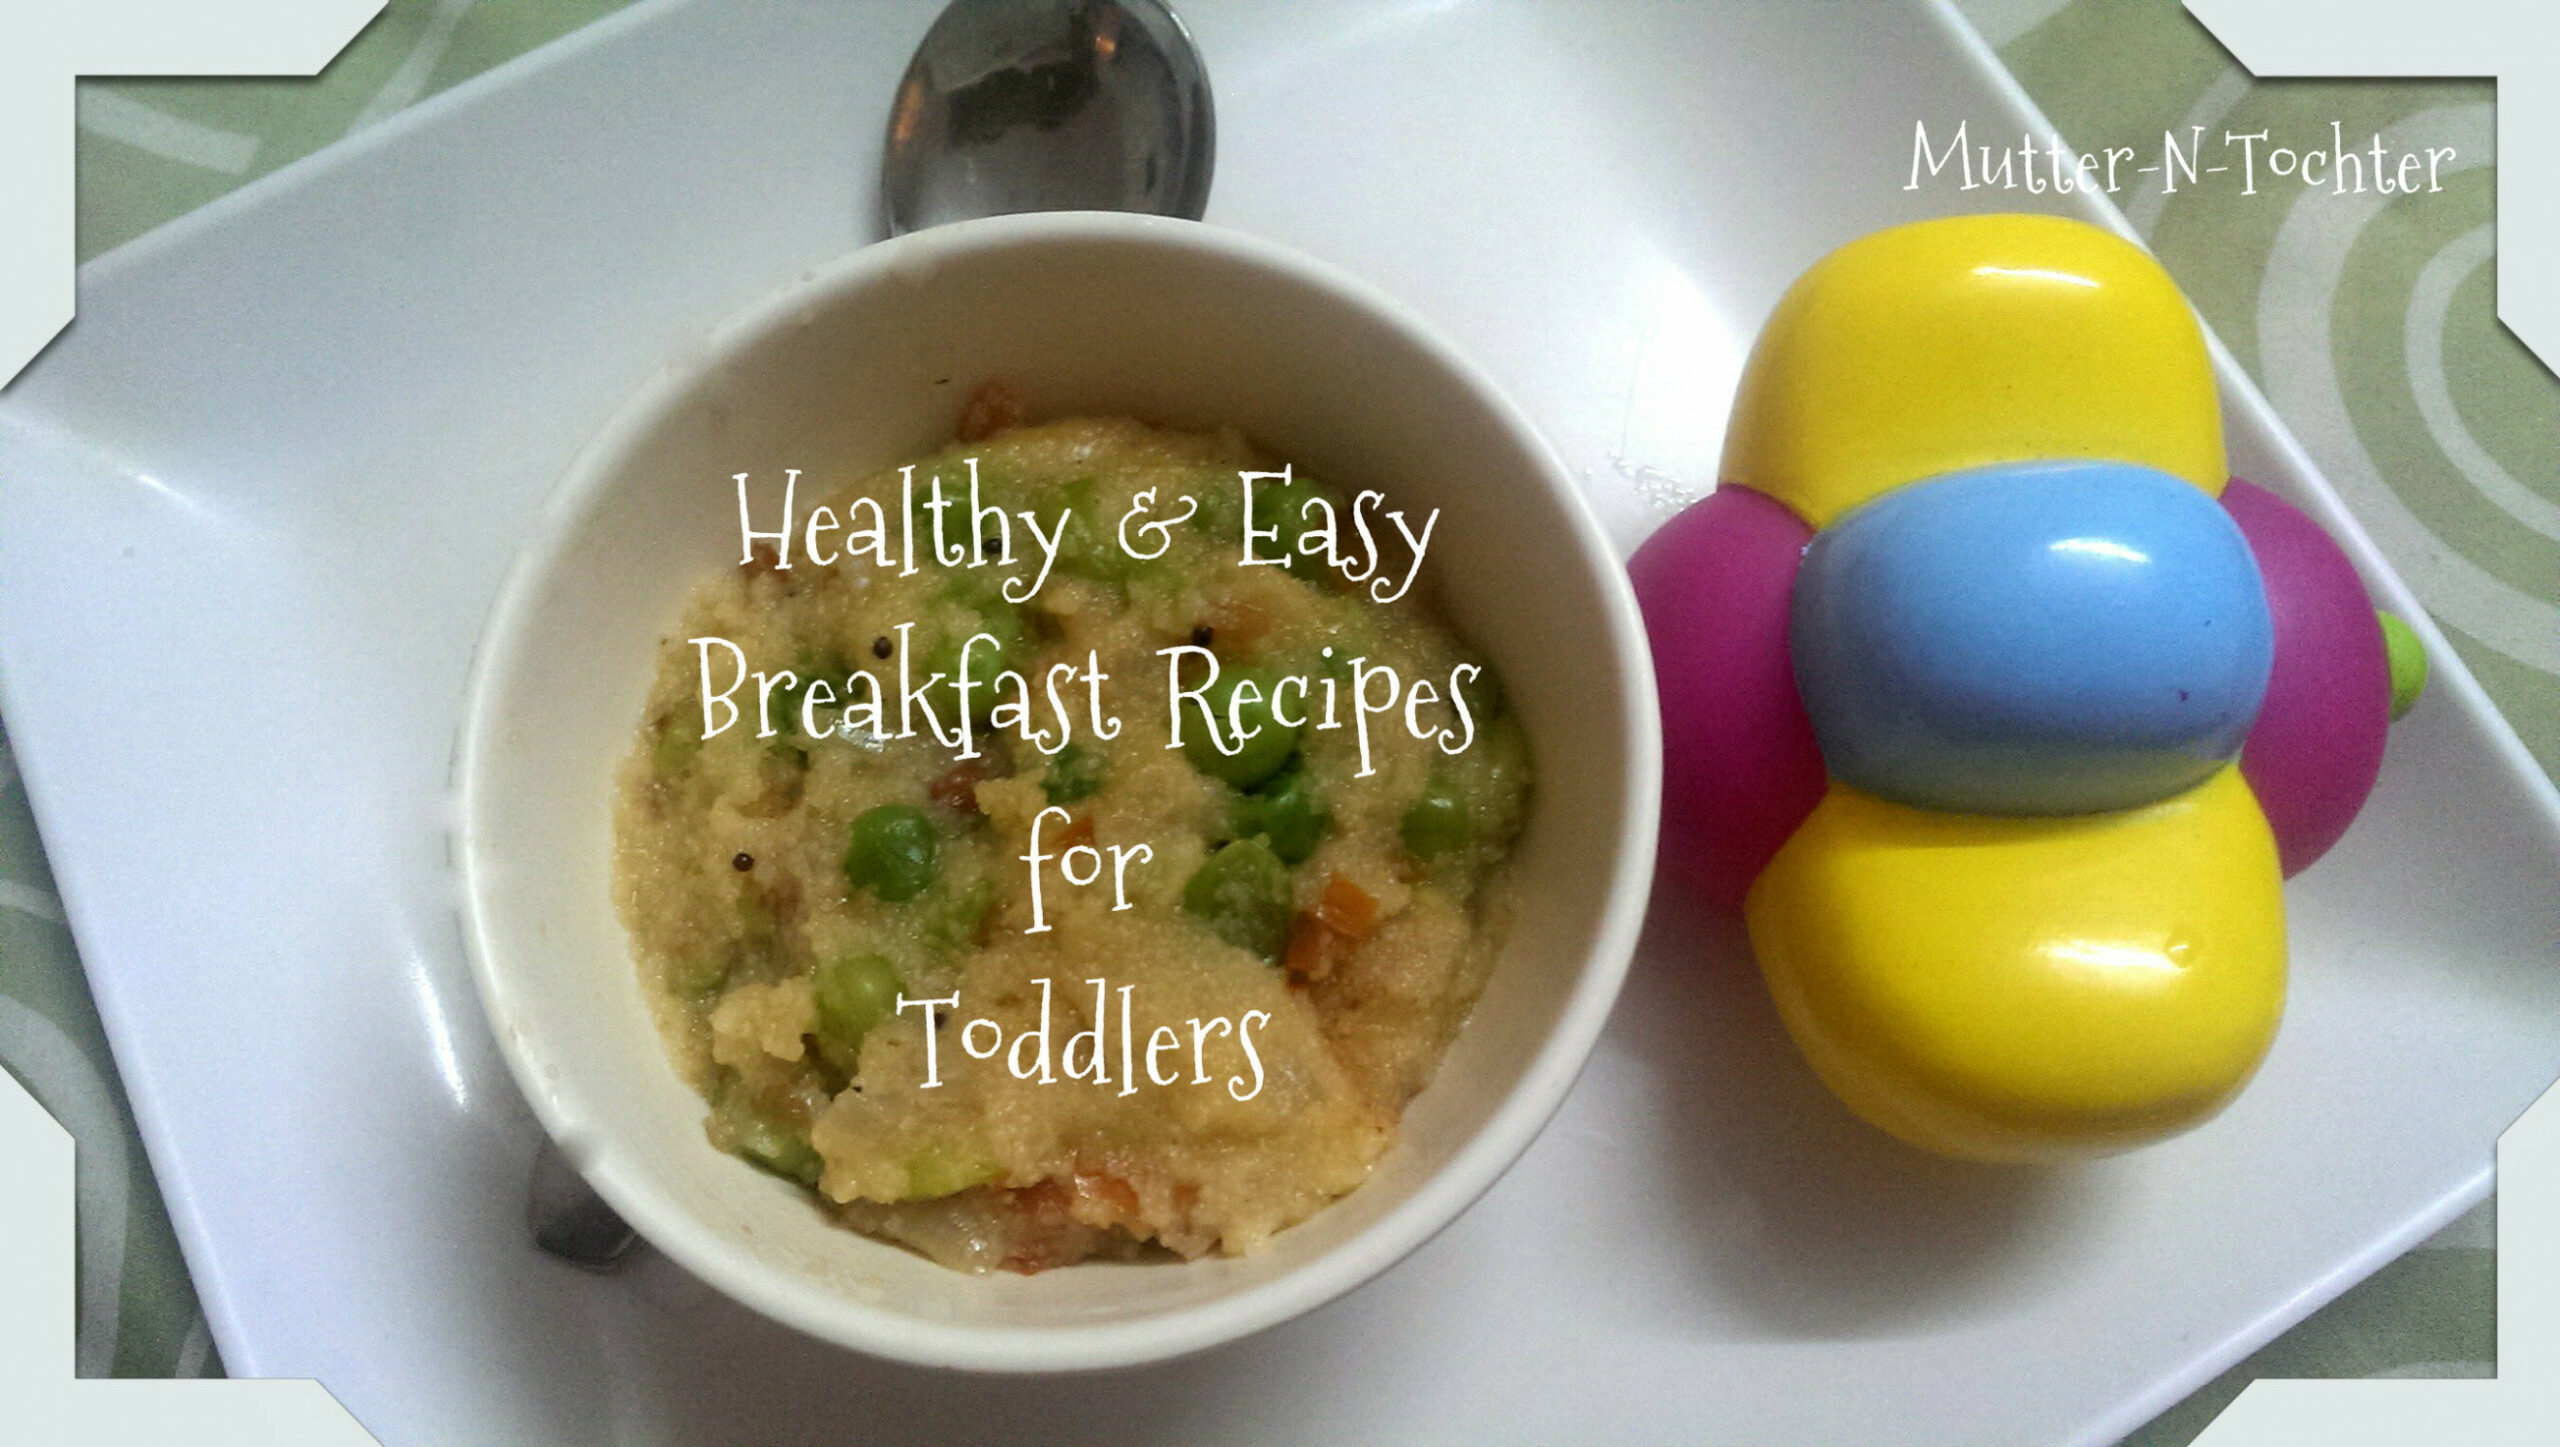 Easy-peasy healthy breakfast recipes for one year olds ..